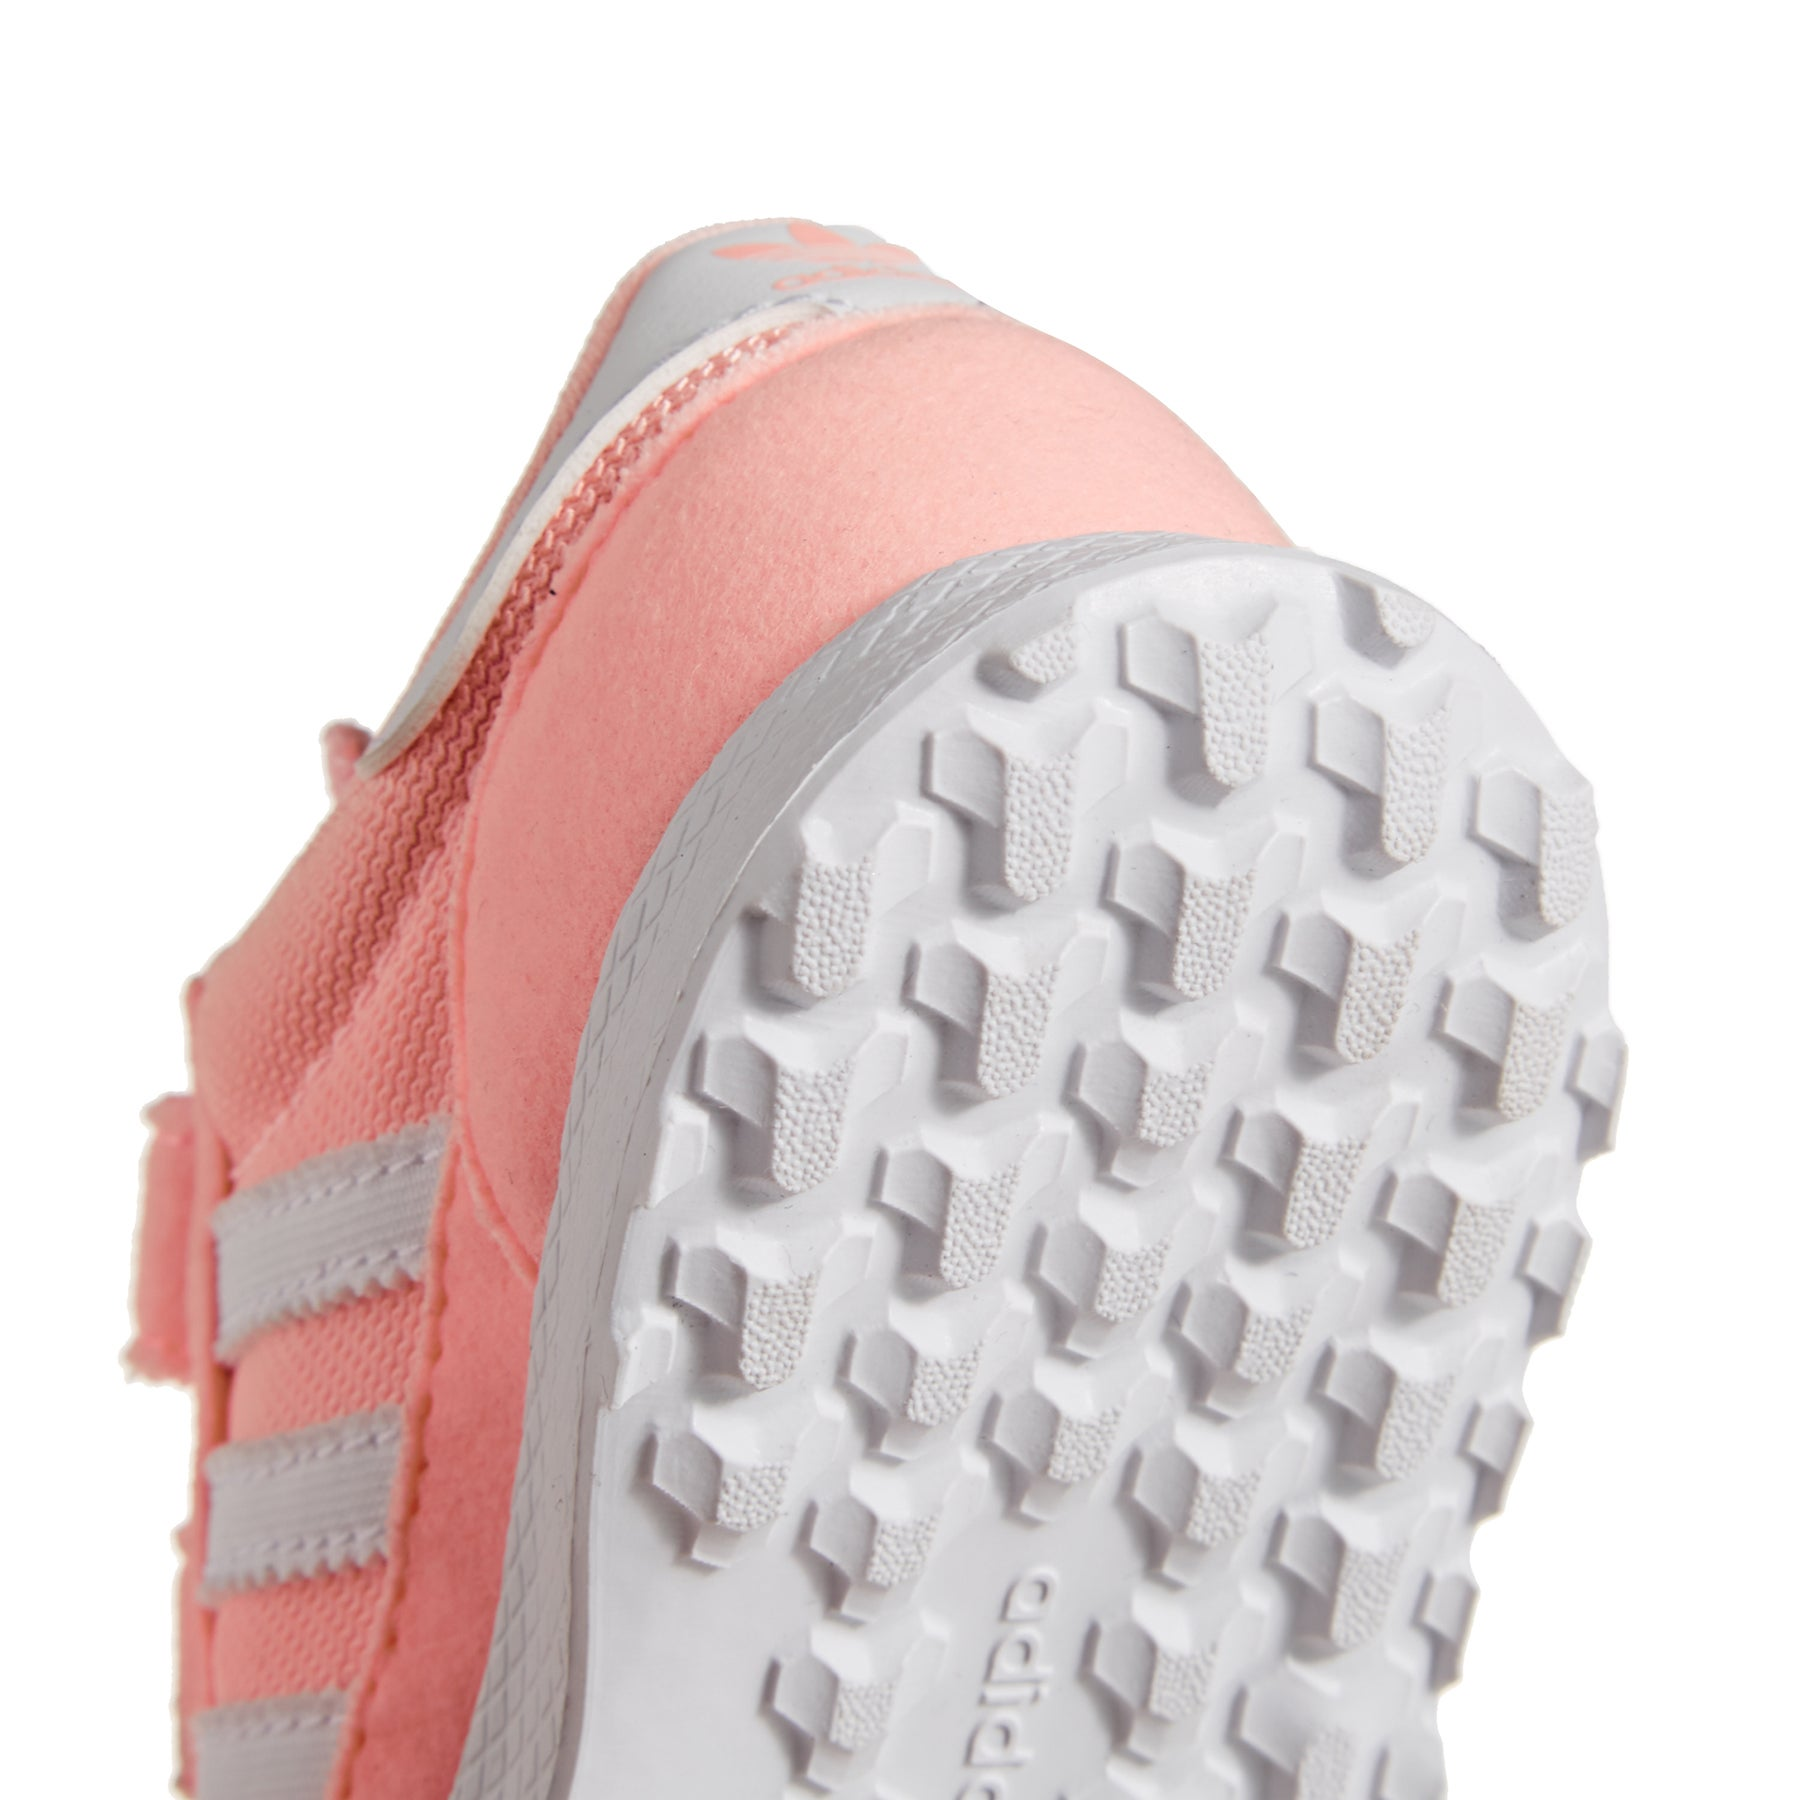 Adidas originals Forest Grove CF I Touch 'N' Close Trainers